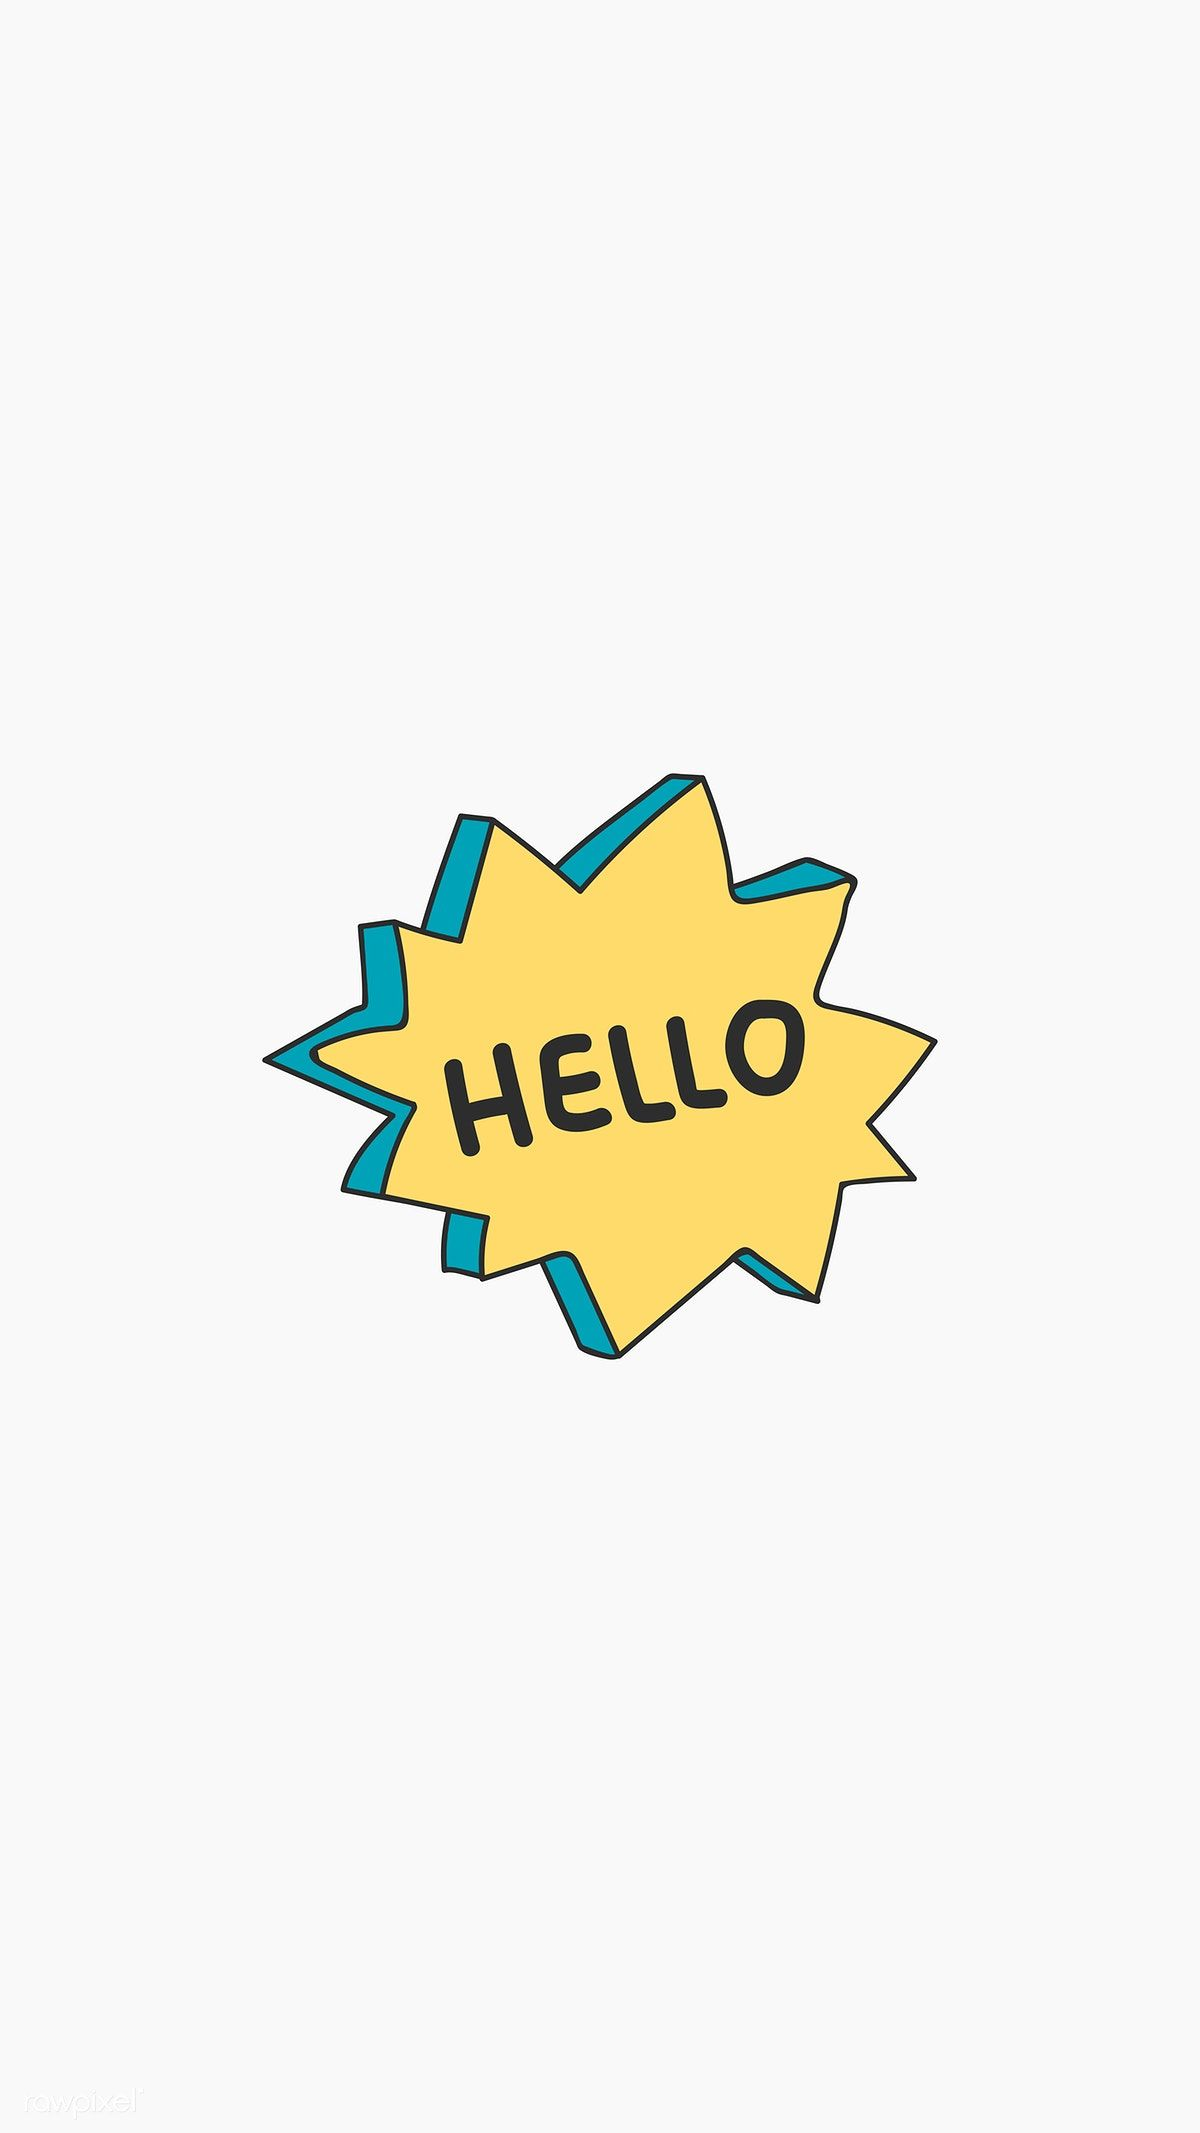 Hello Greeting Bubble Icon Vector Free Image By Rawpixel Com Wan Hello Wallpaper Hello Greeting Iphone Wallpaper Pattern Aesthetic bubble letters wallpaper